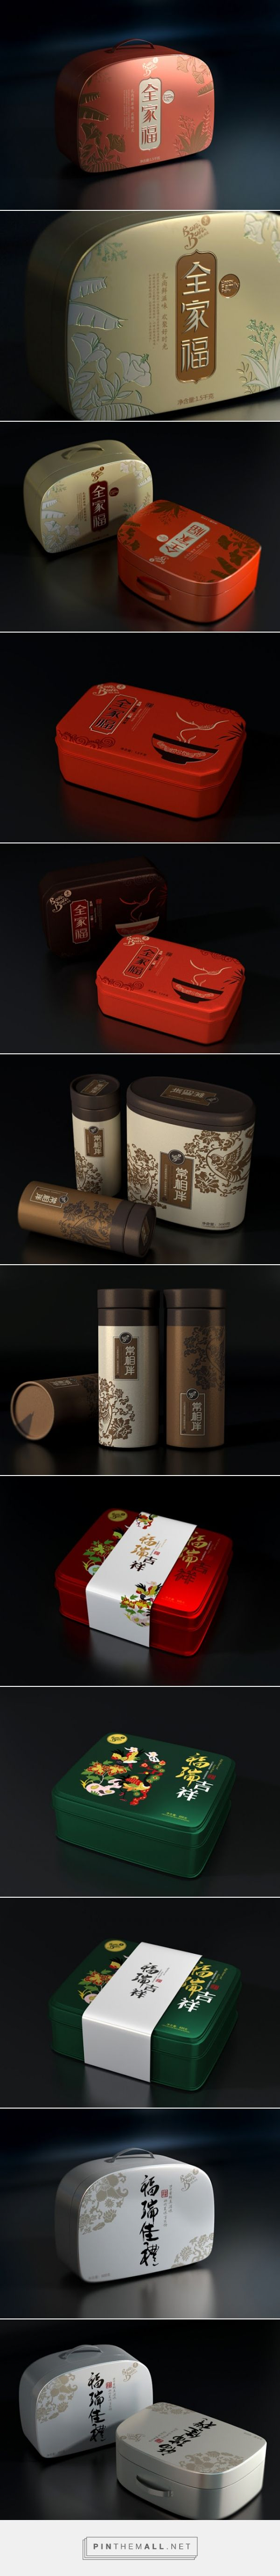 Bora Bora #Foods #packaging by Aurea Design - http://www.packagingoftheworld.com/2015/01/bora-bora-foods.html